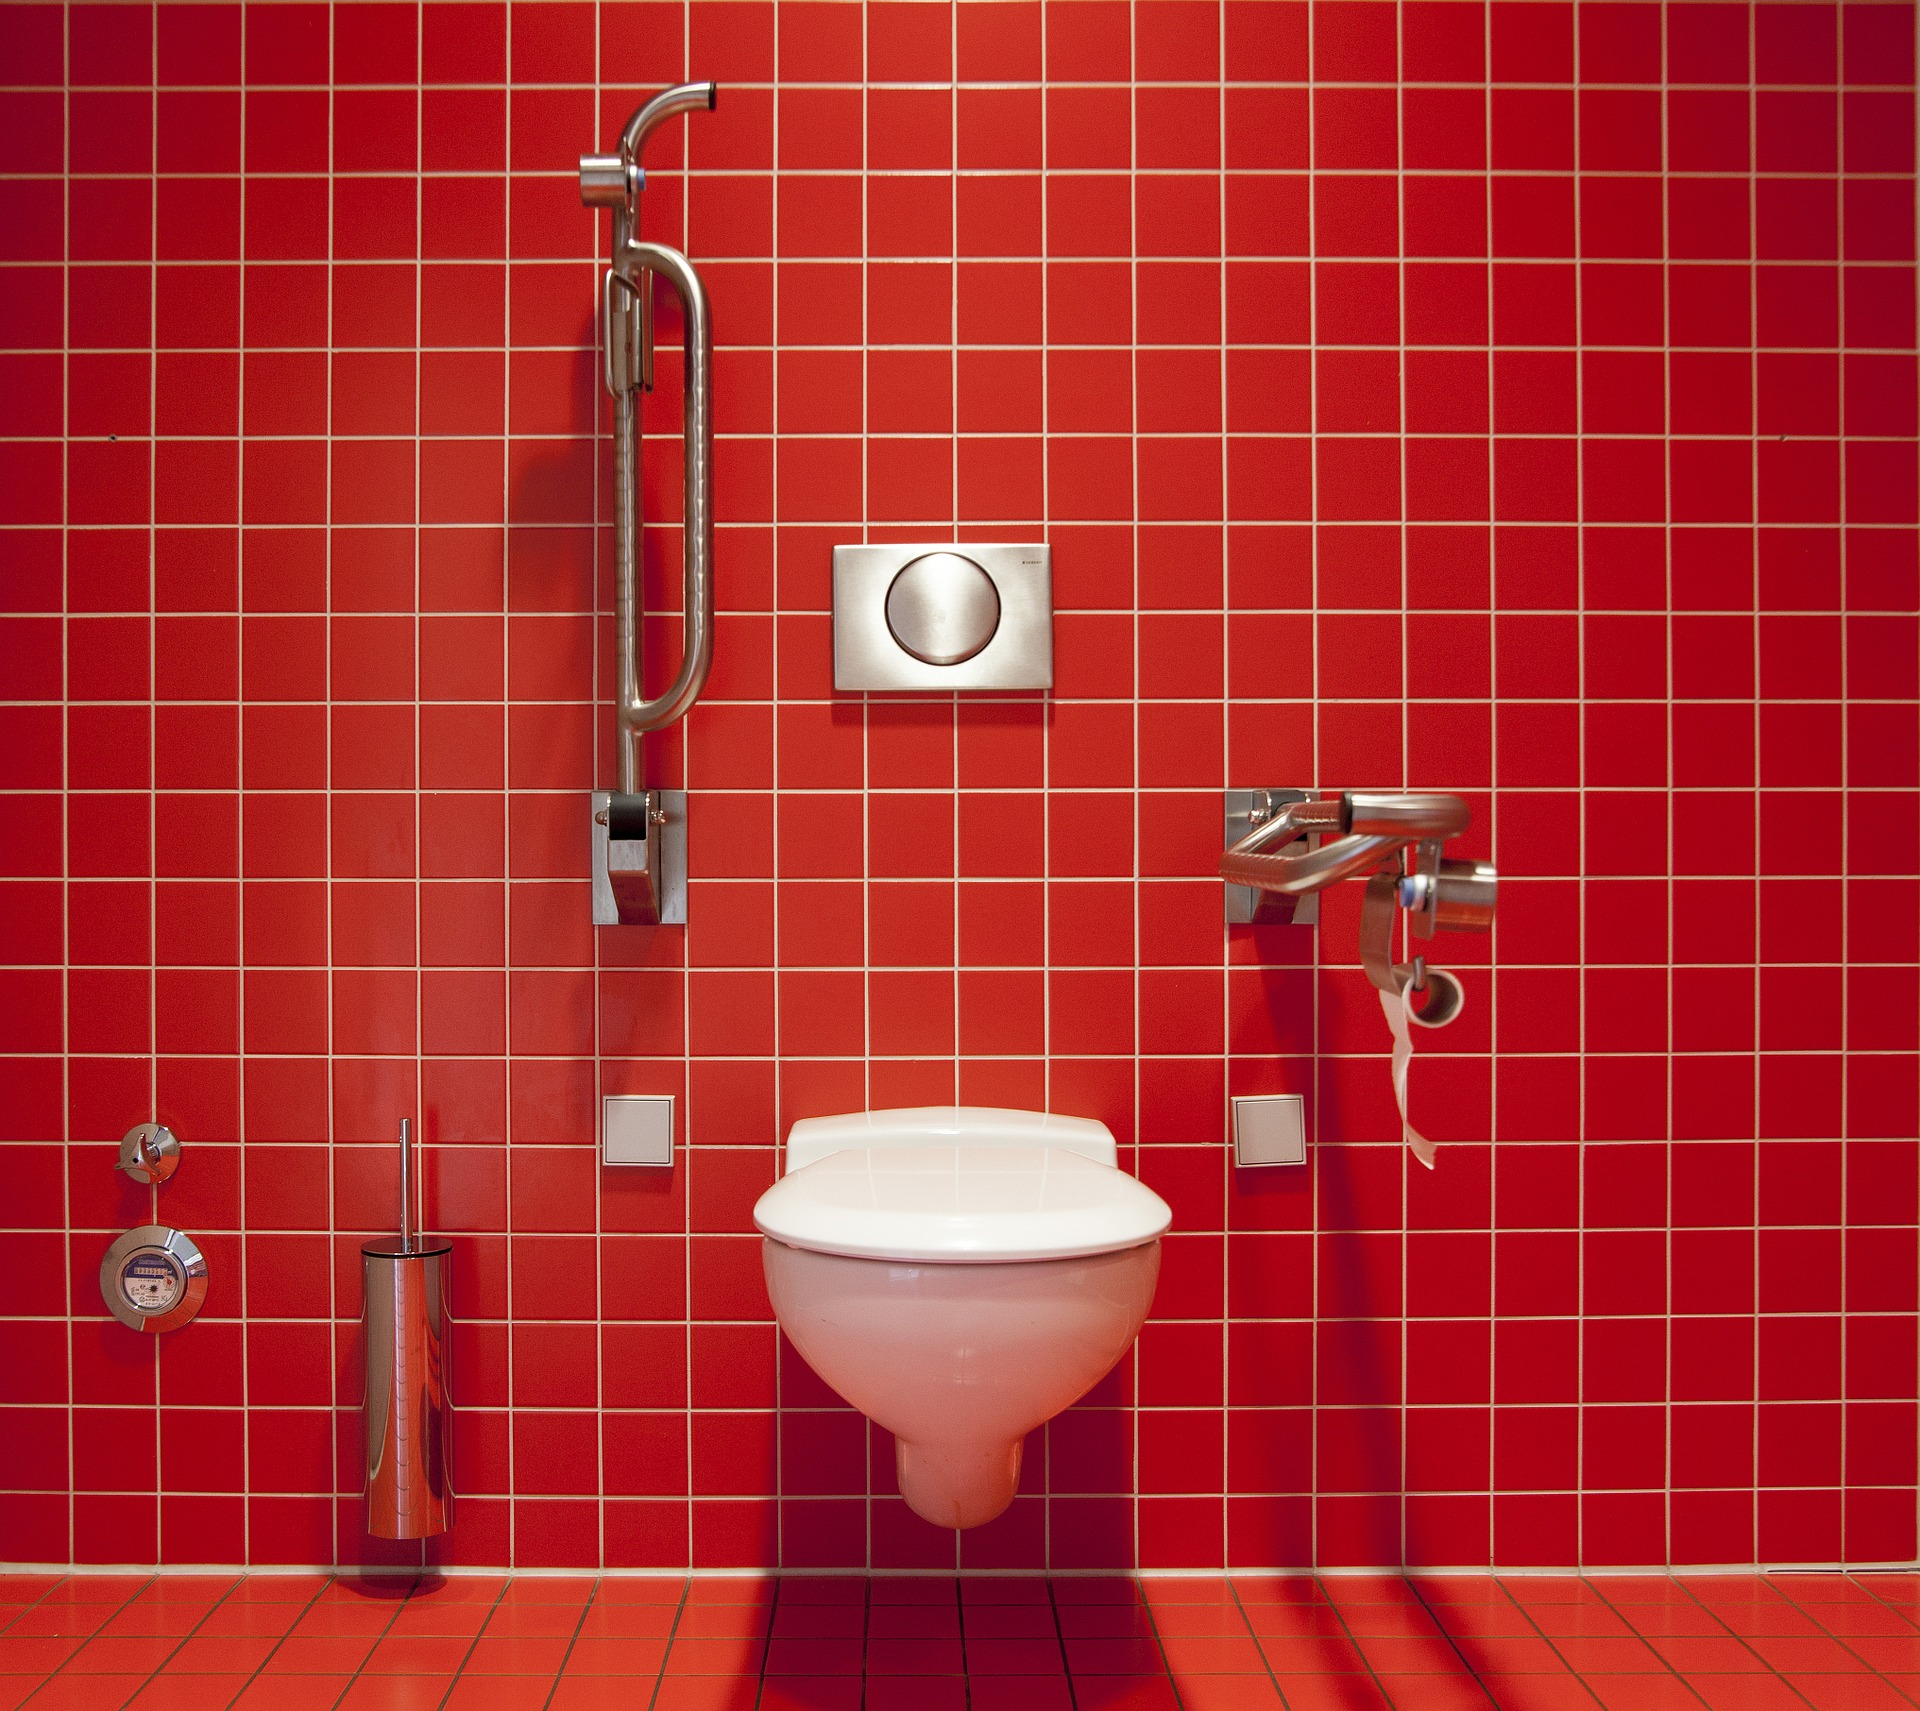 Lovely toilet fitted with red tiled background not likely to become clogged for a while due to modern fittings.